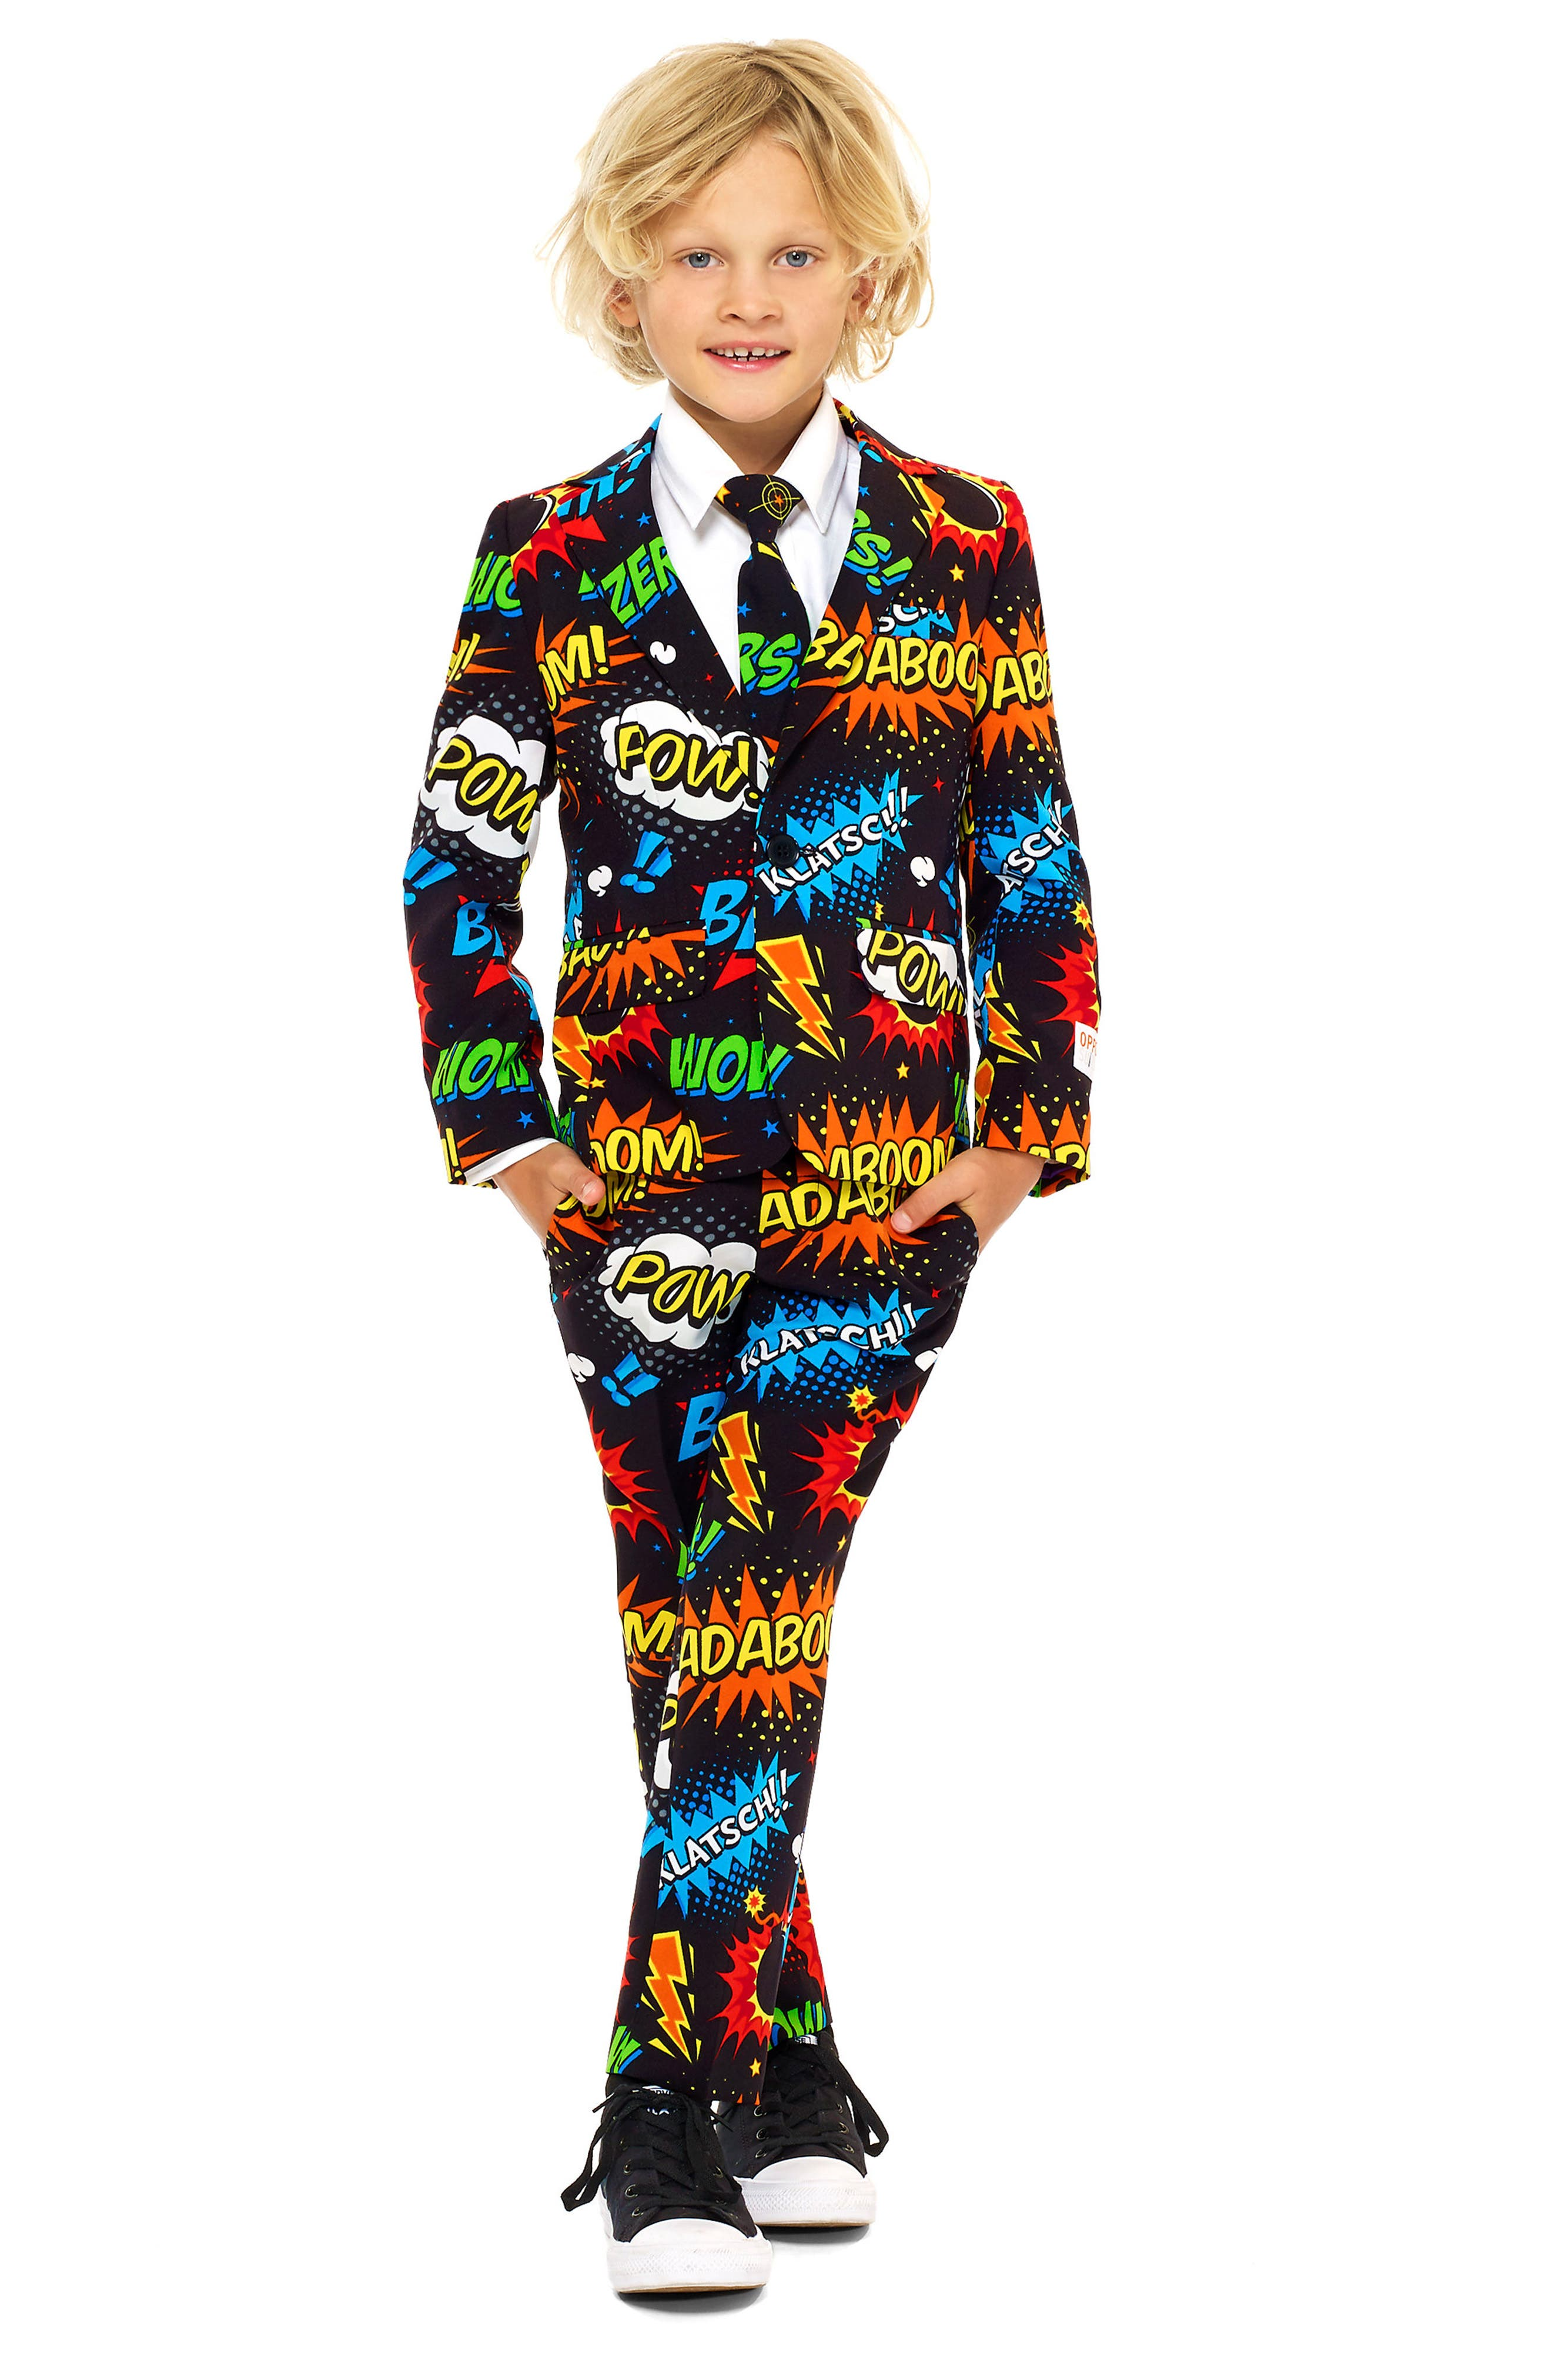 Alternate Image 1 Selected - Oppo Badaboom Two-Piece Suit with Tie (Toddler Boys, Little Boys & Big Boys)